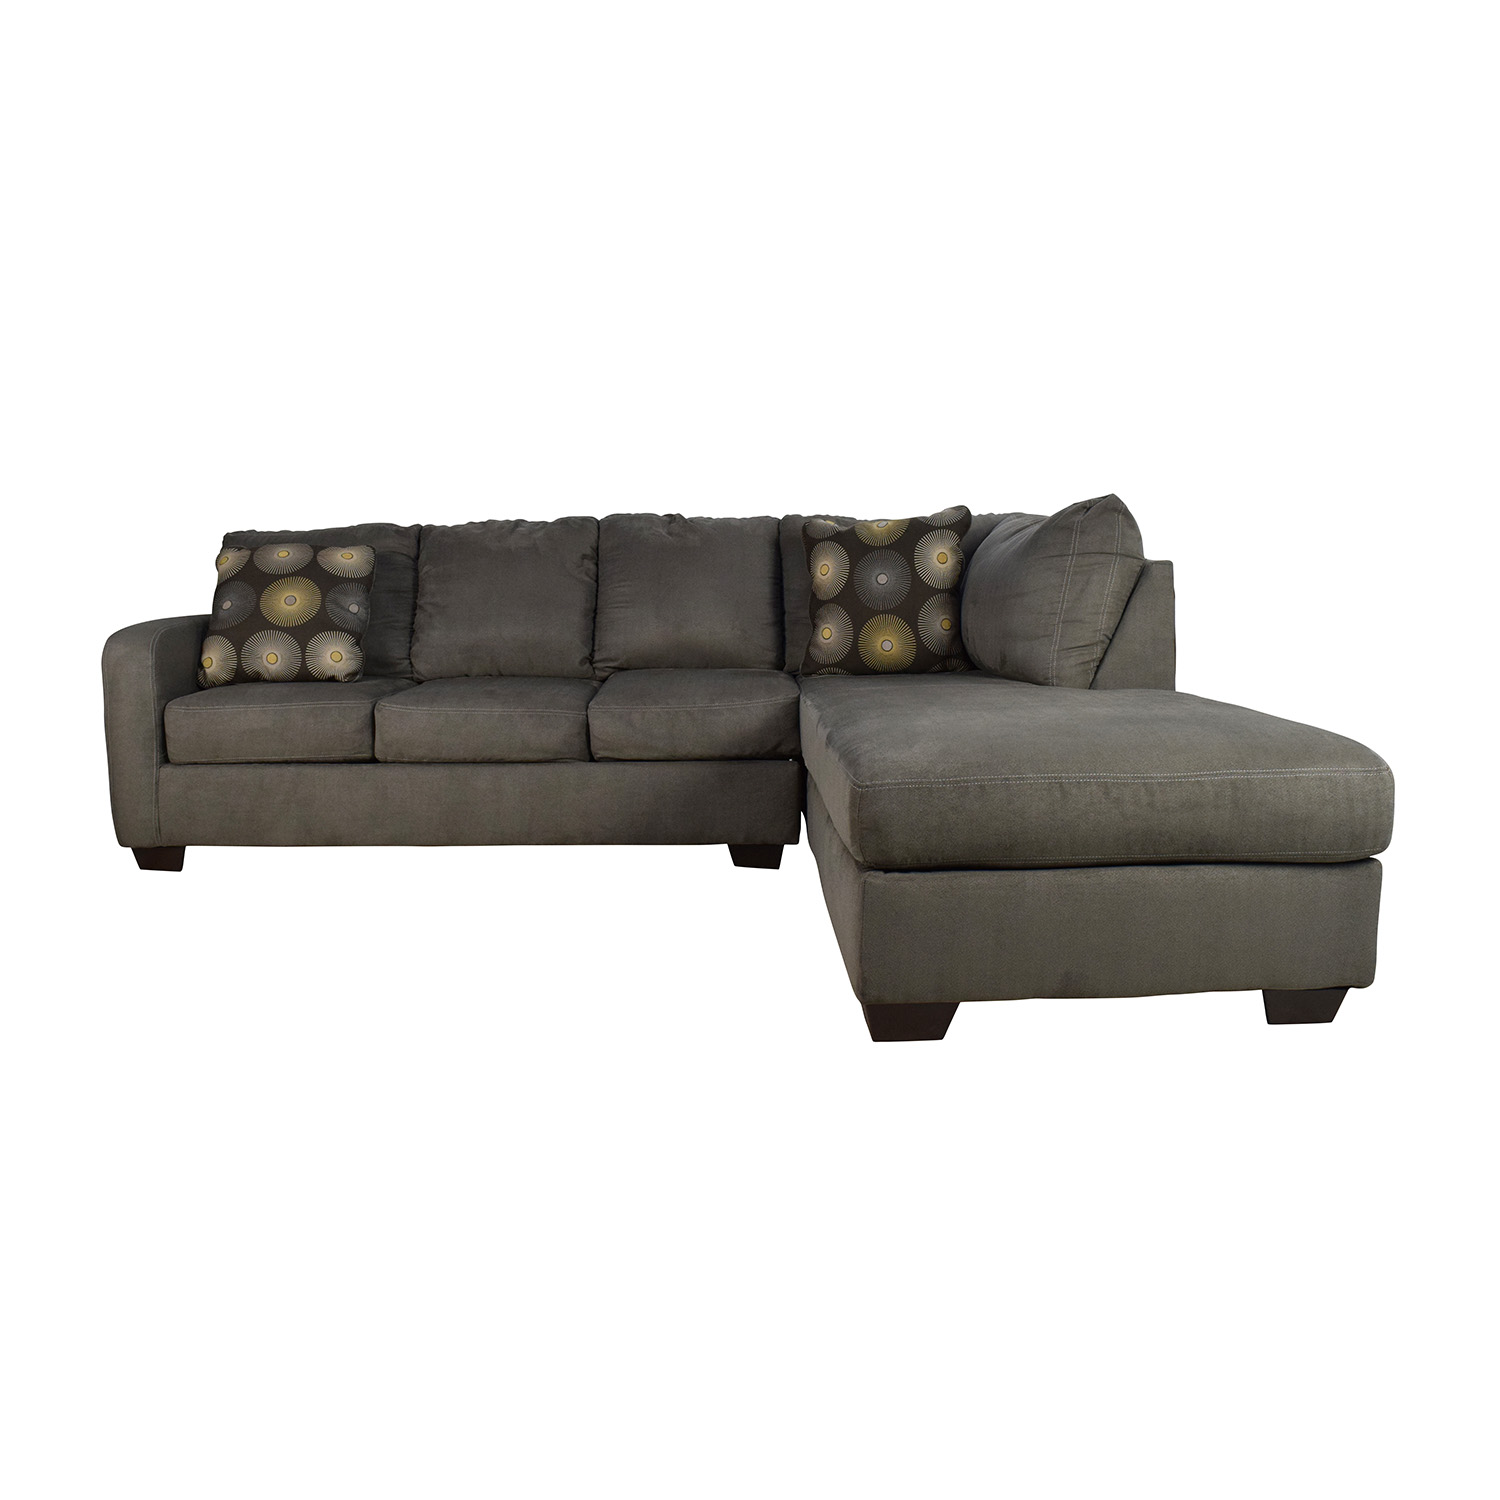 buy Ashley Furniture Waverly Gray Sectional Sofa Ashley Furniture Sofas